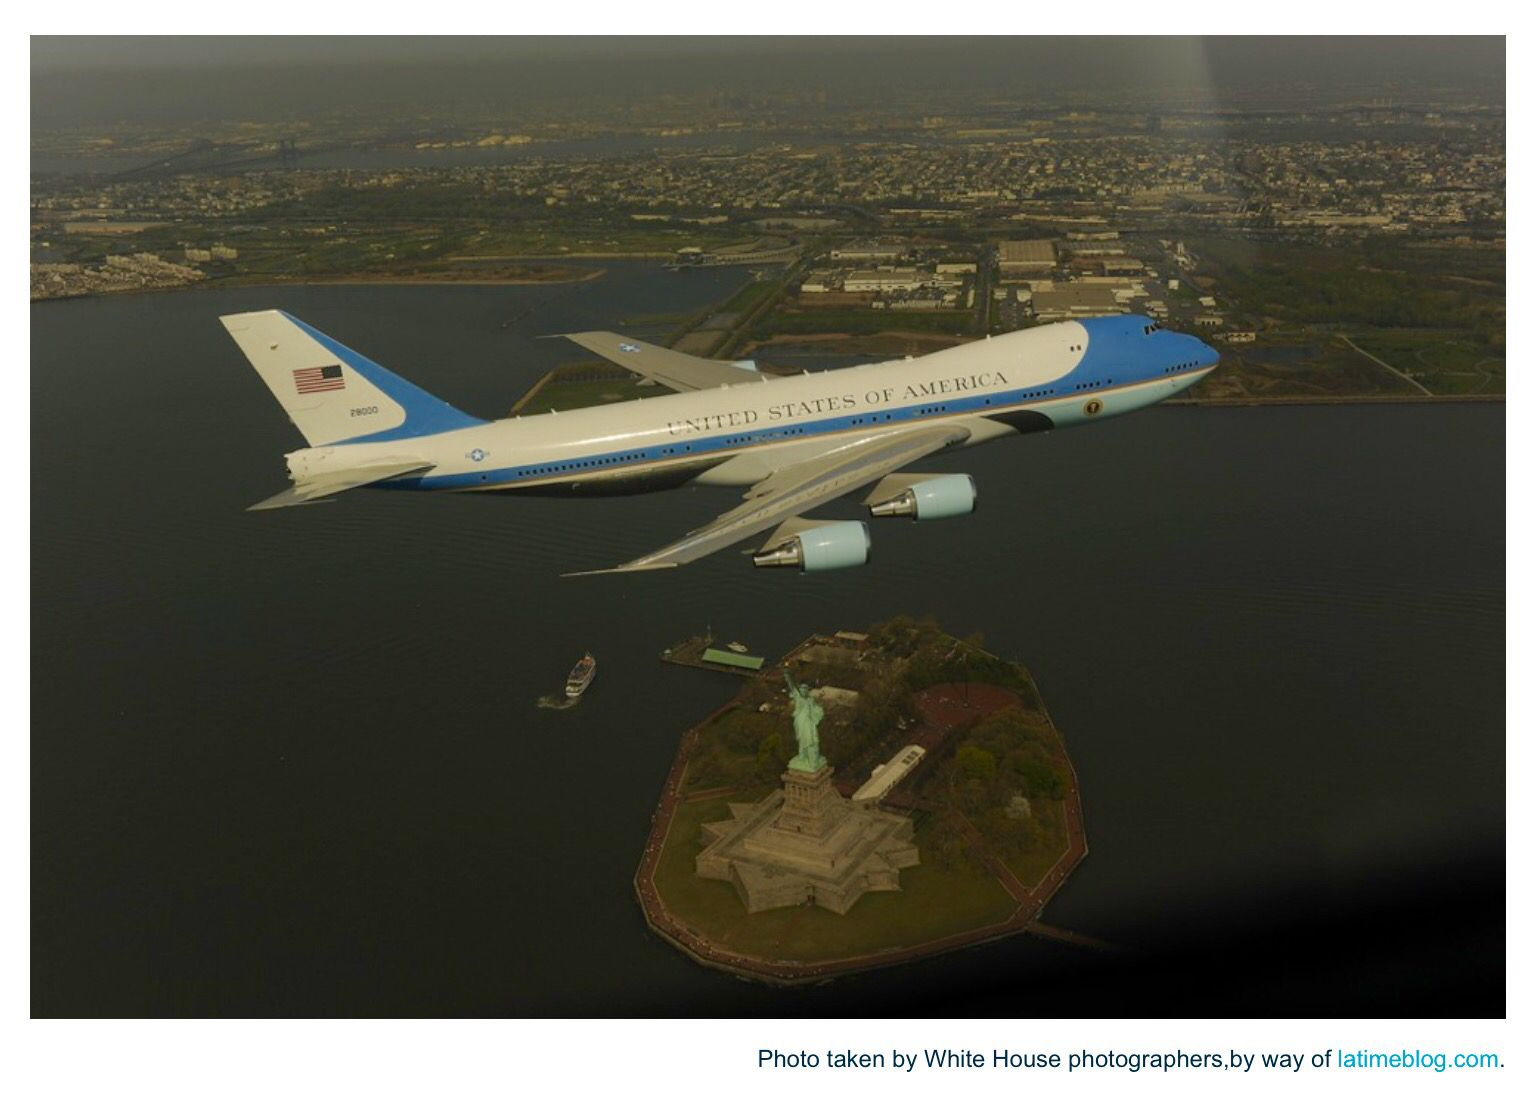 Pin by Kelly Wilkerson on Military Aircraft | Air force ones